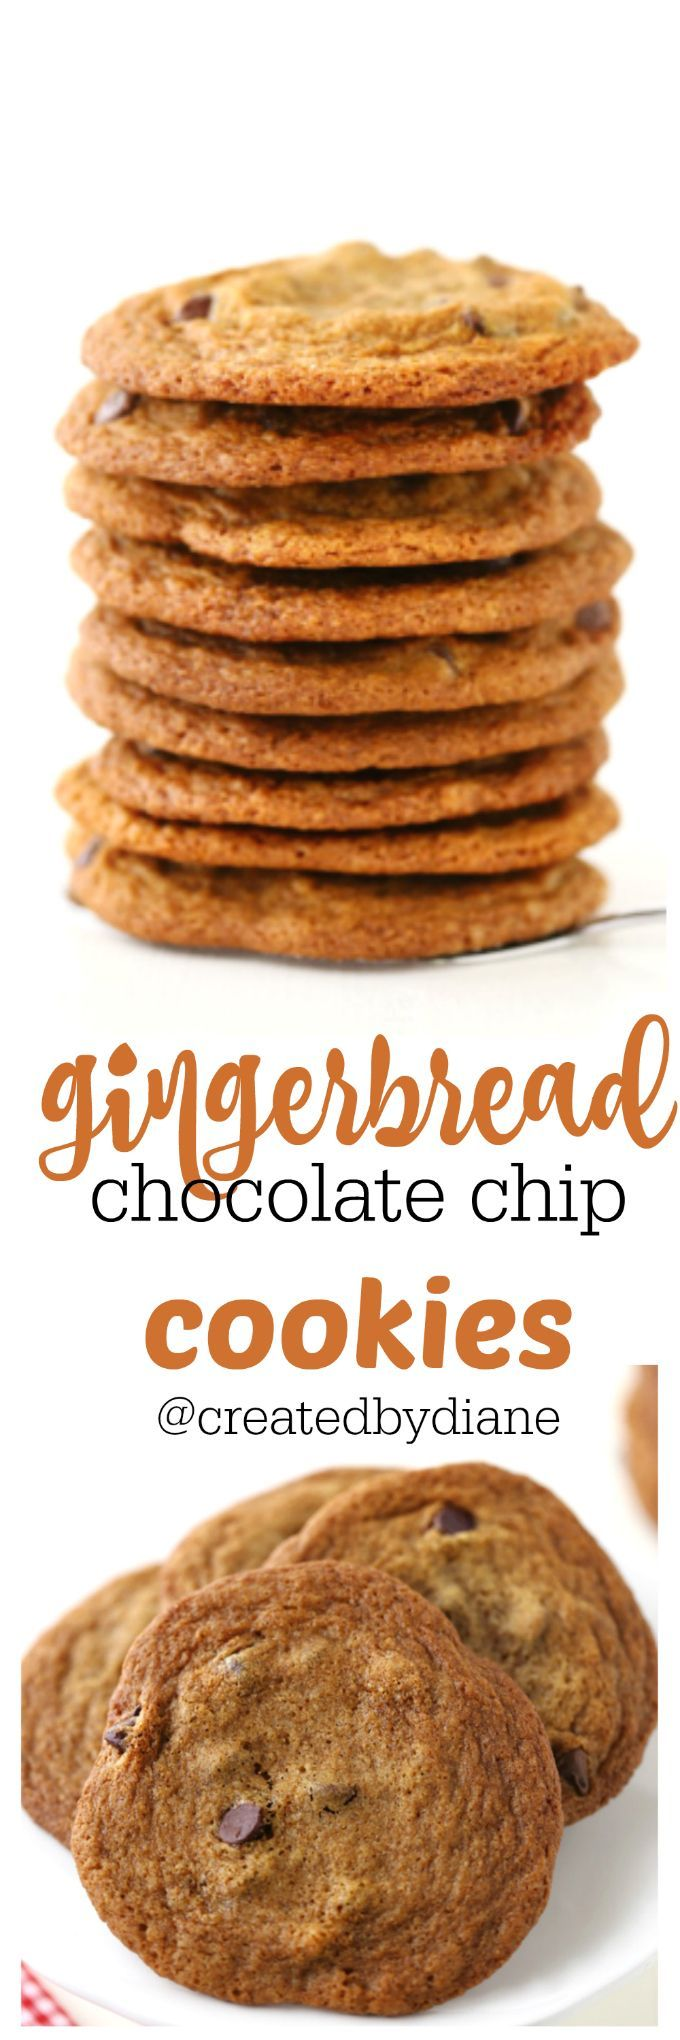 gingerbread-chocolate-chip-cookies-from-createdbydiane